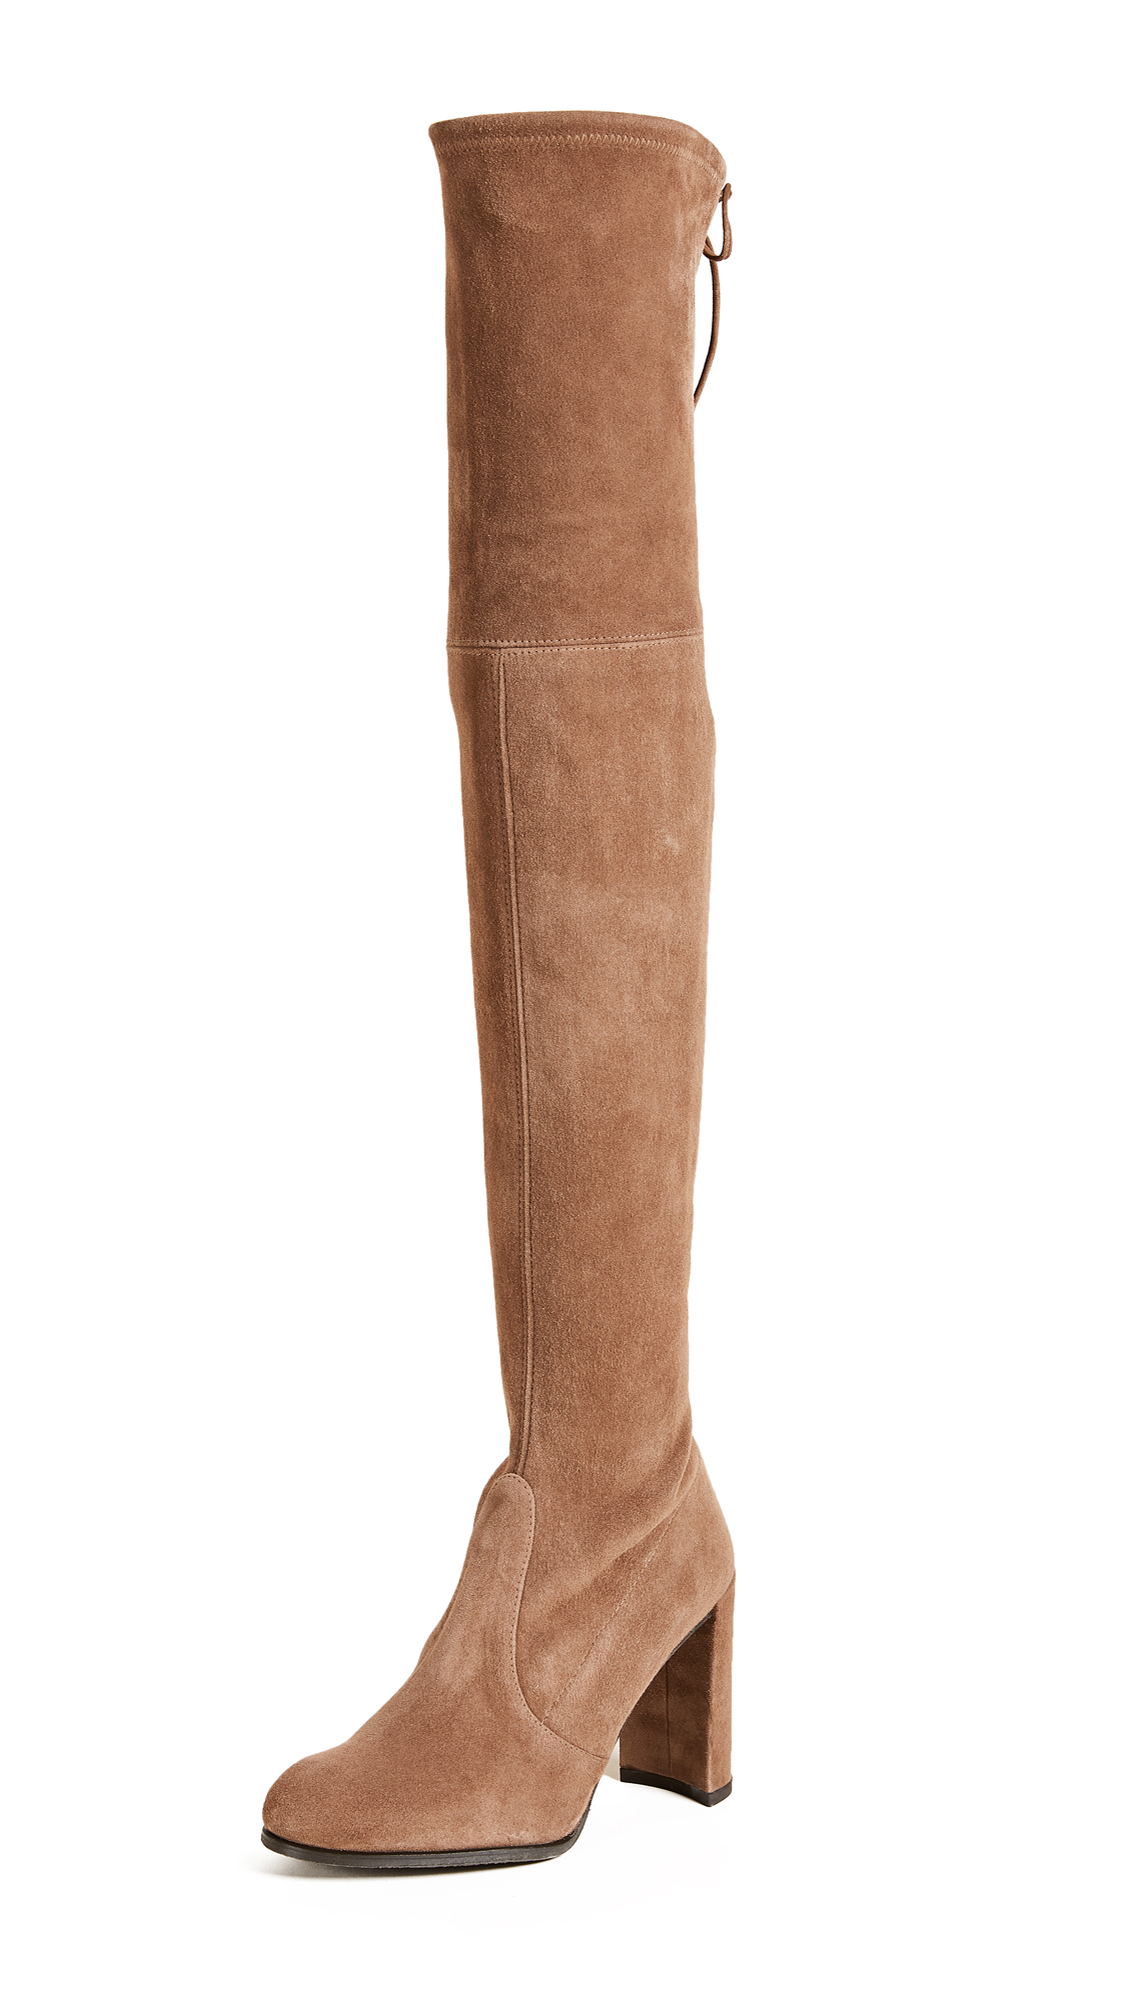 Stuart Weitzman Hiline Over the Knee Boots - Nutmeg